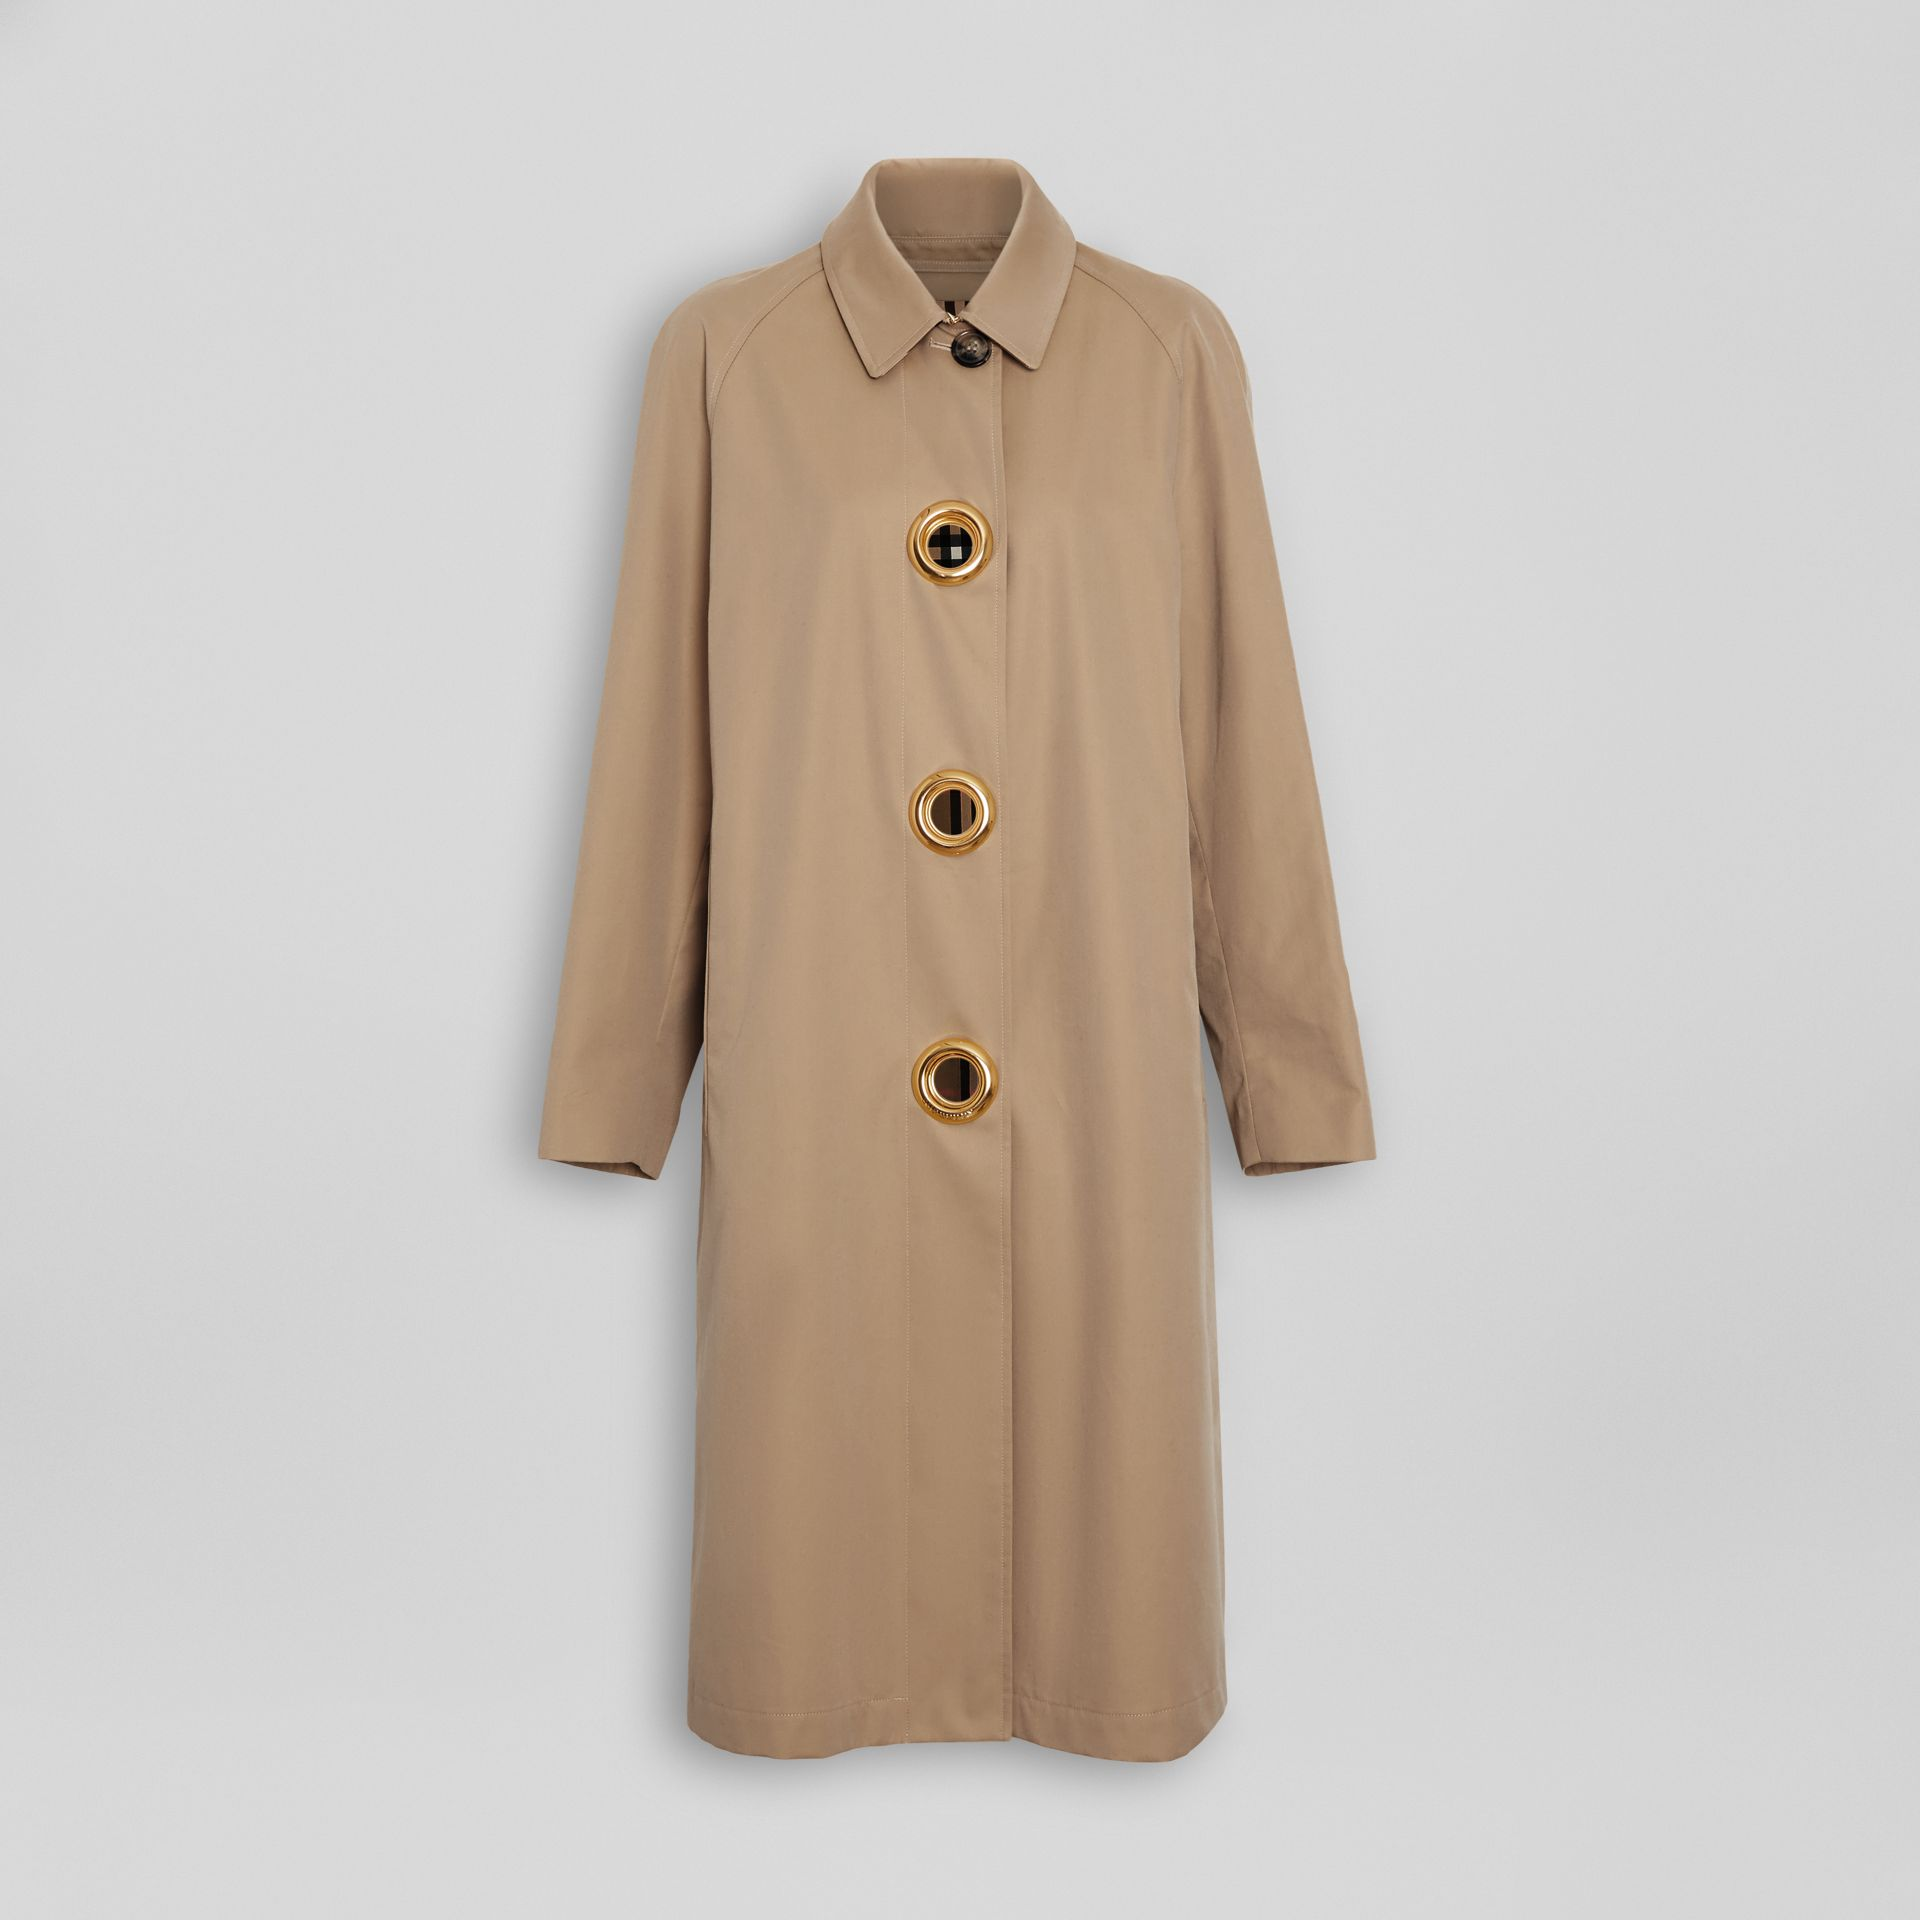 Grommet Detail Cotton Gabardine Car Coat in Honey - Women | Burberry Singapore - gallery image 3